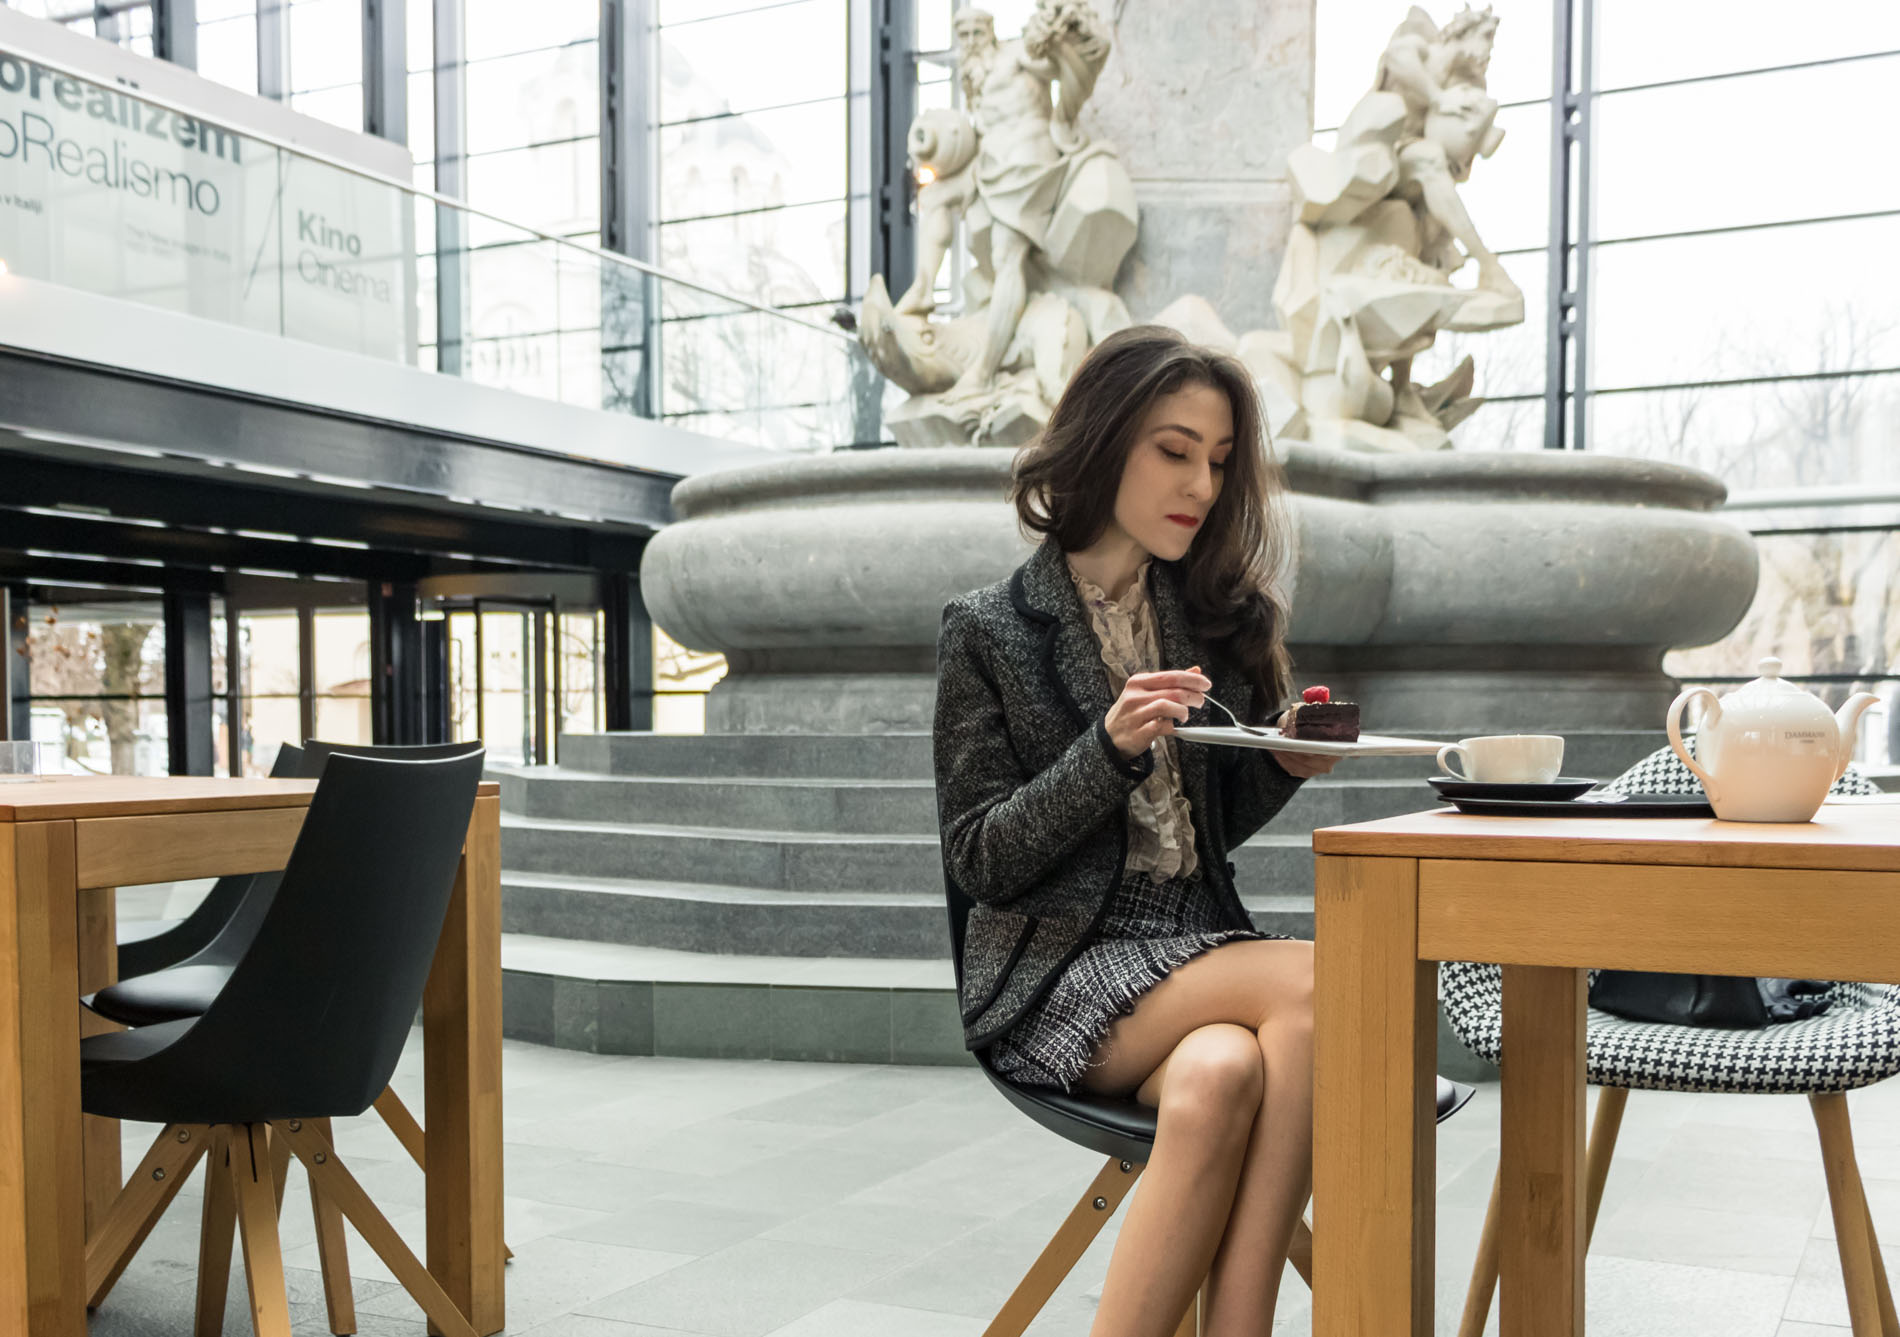 Fashion Blogger Veronika Lipar of Brunette from Wall Street wearing blush Gianvito Rossi Plexi 100 leather and PVC pumps, tweed plaid mini skirt from Storets, black and white Marella tweed jacket while having an afternoon tea